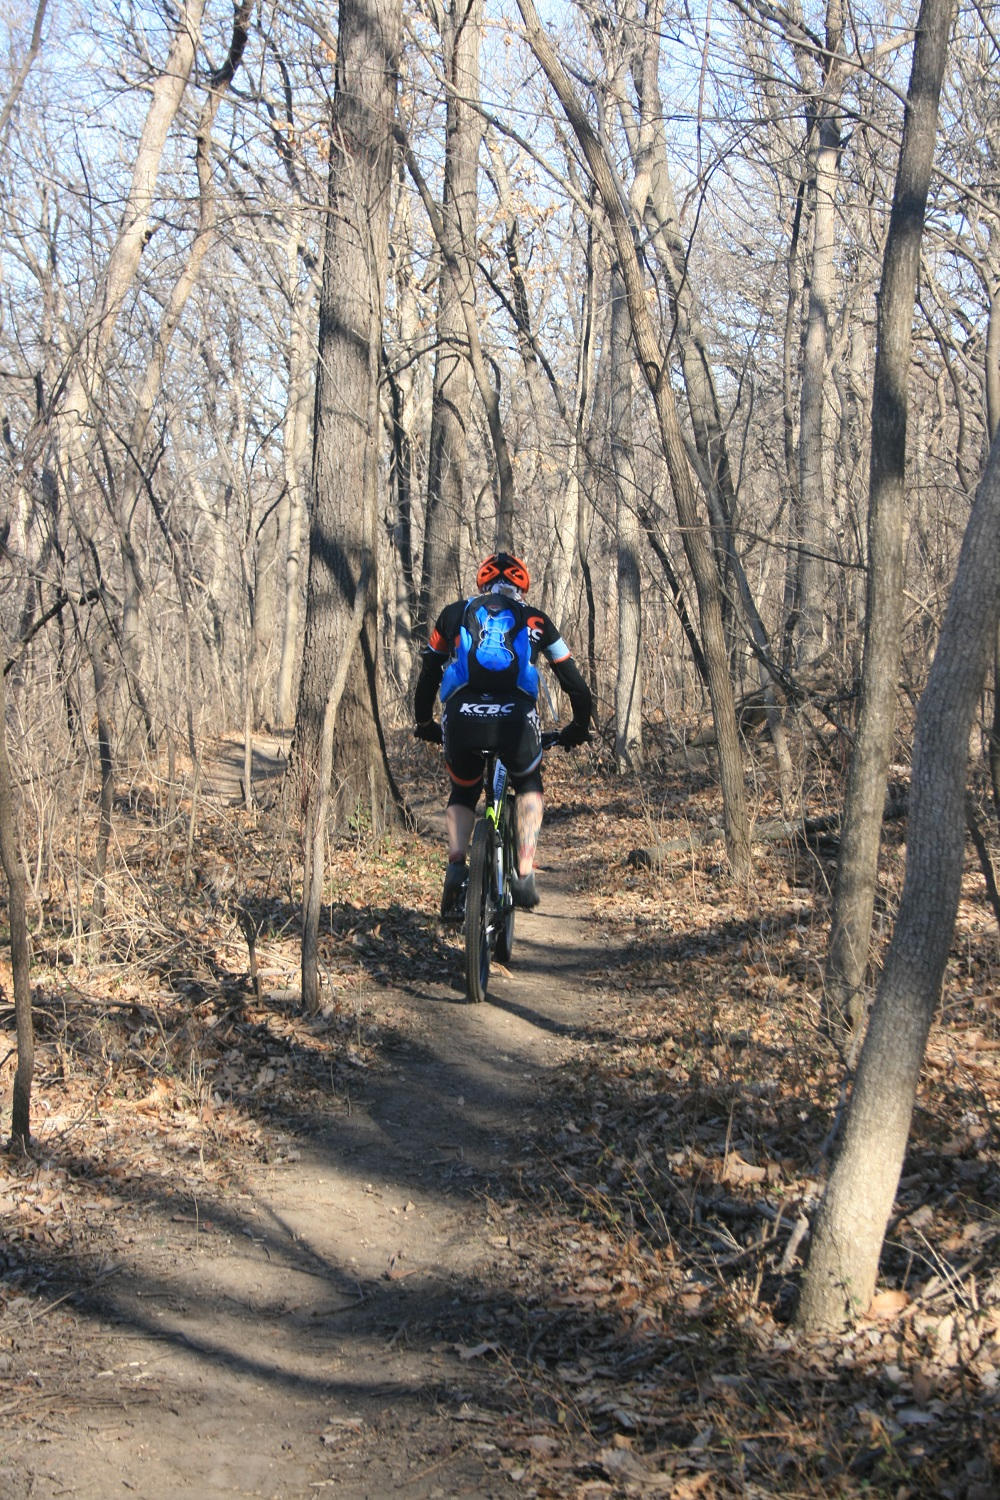 Trail Bike on the Rozarks Trail in Rosedale